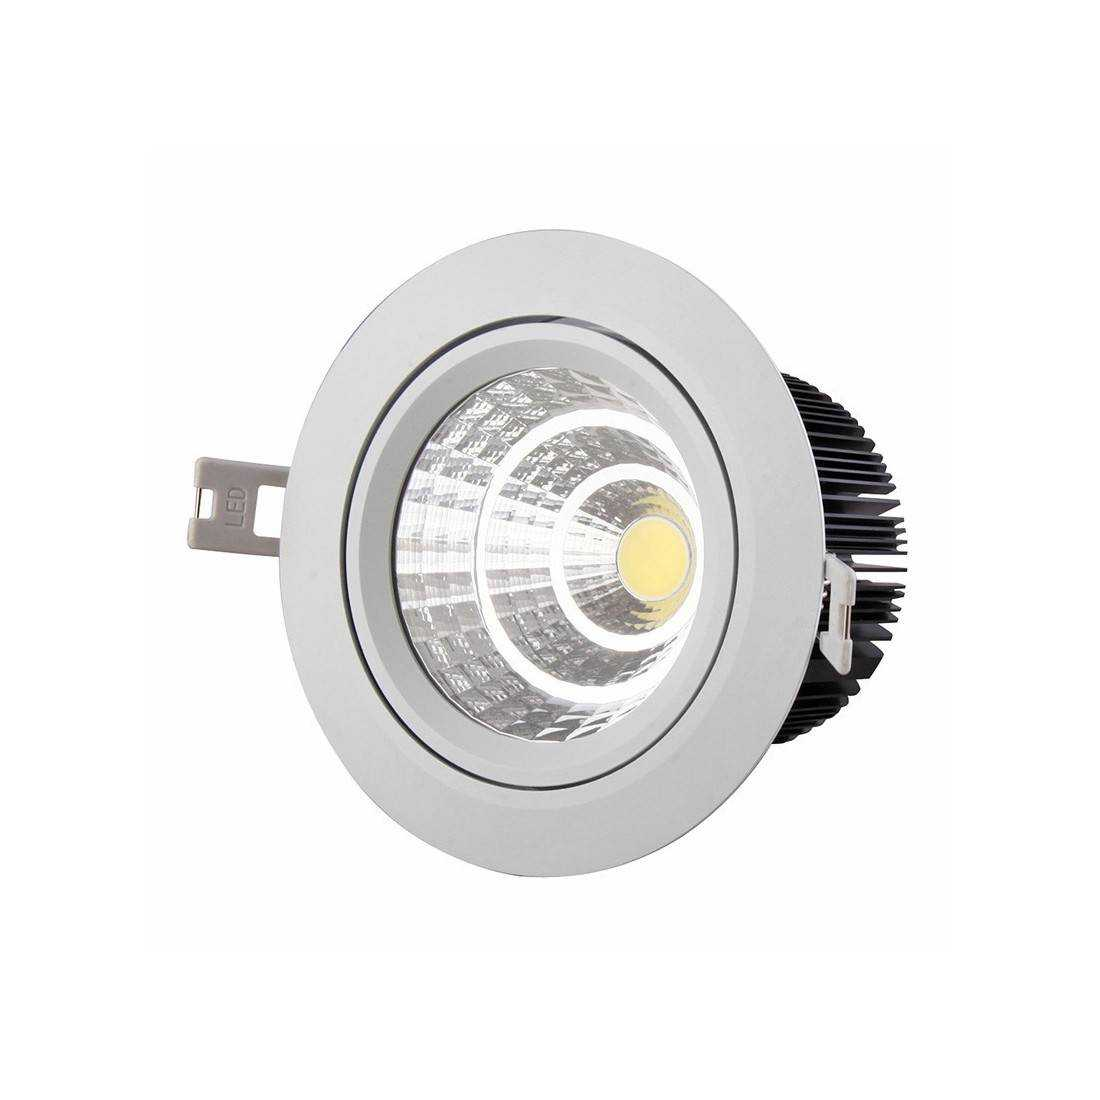 Spot led cob encastrable 7w 230v for Spot exterieur led encastrable